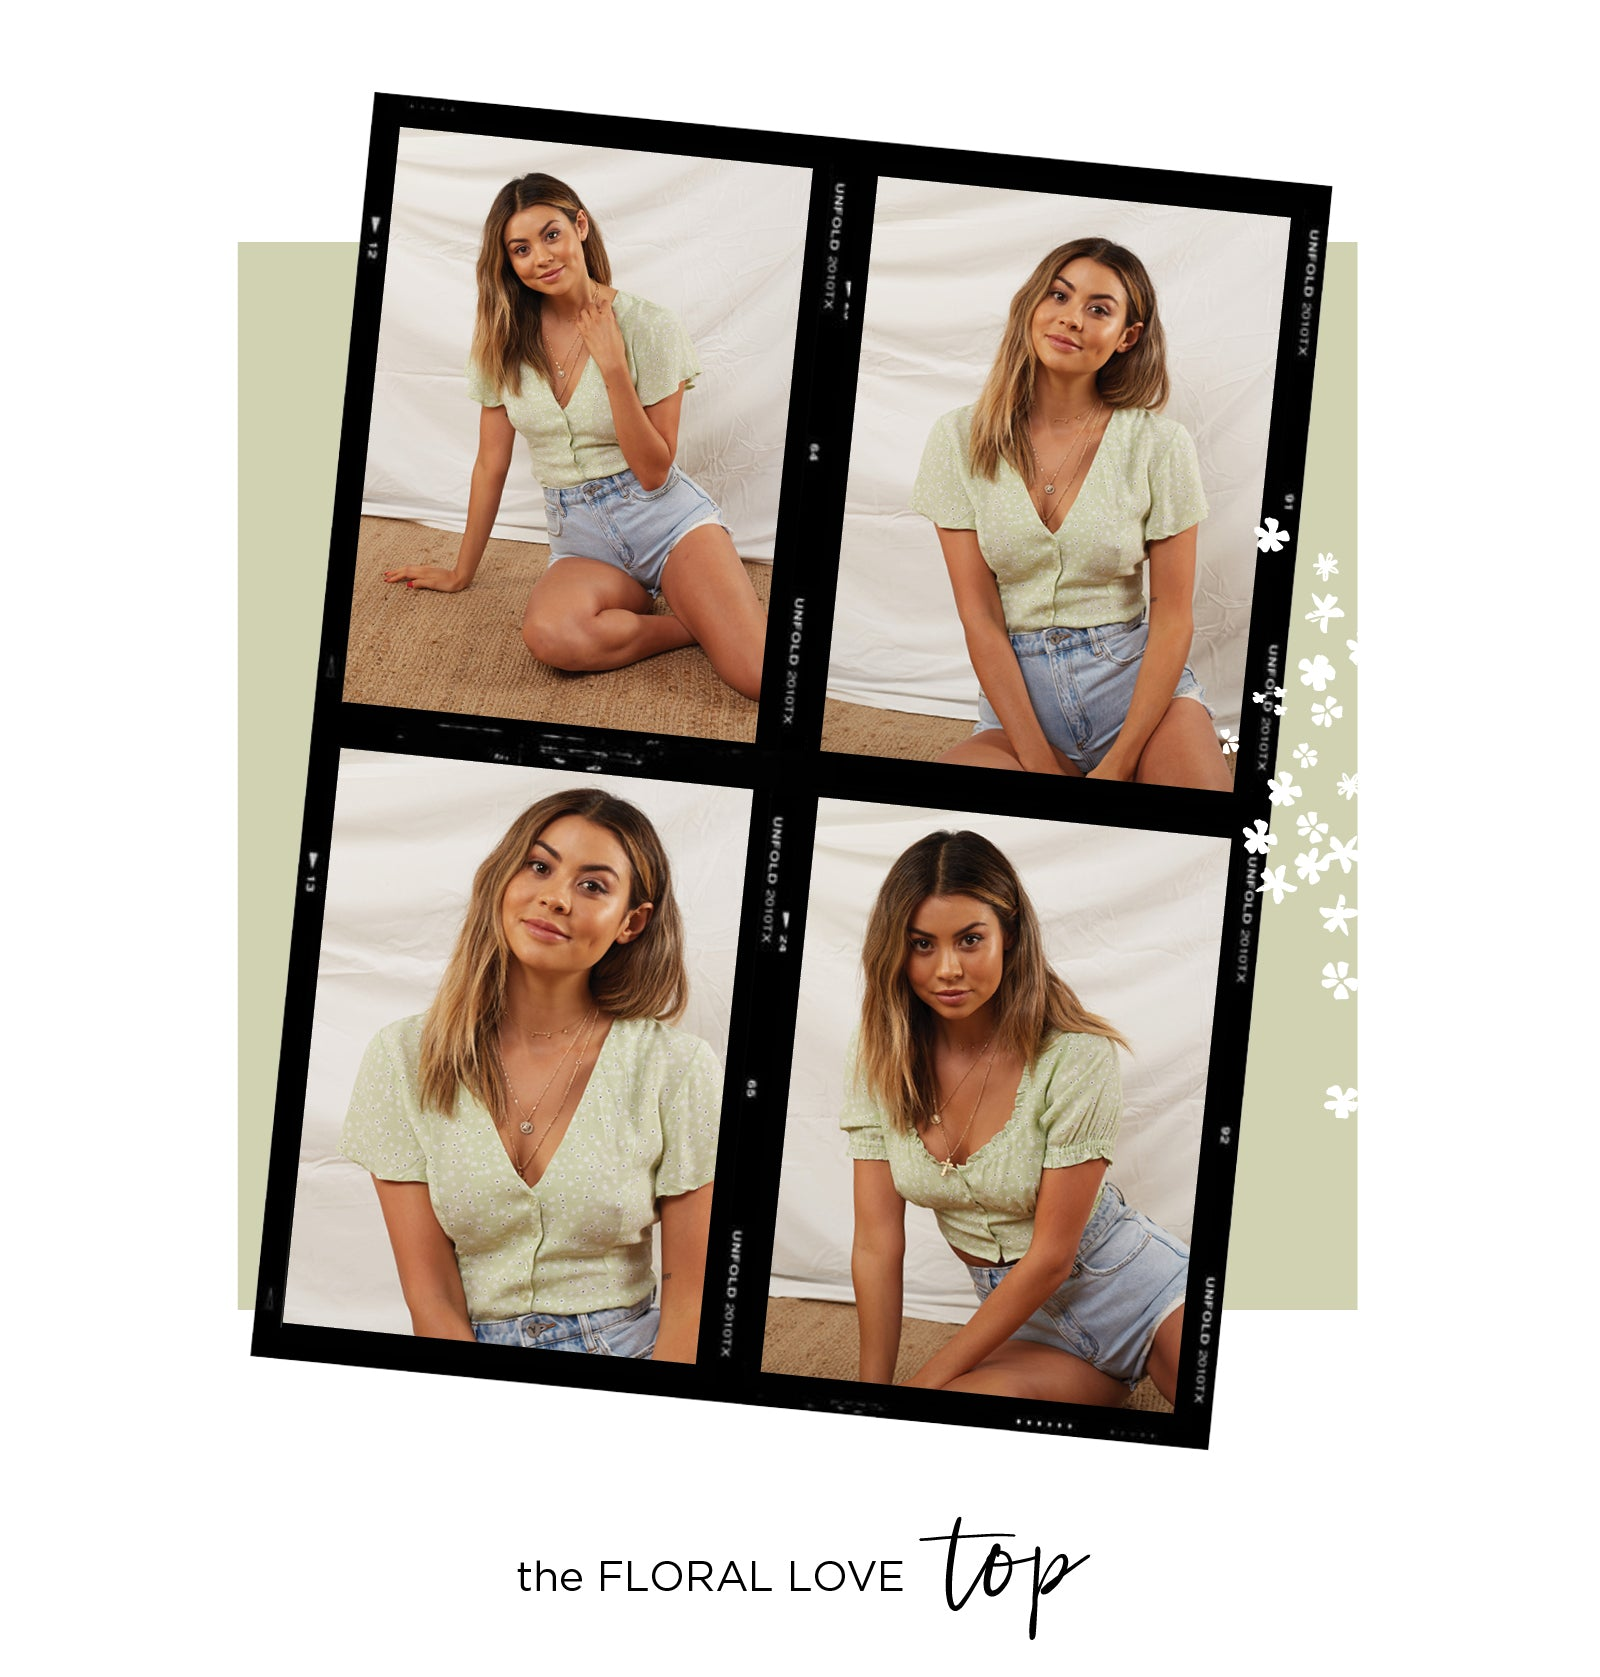 The Floral Love Top